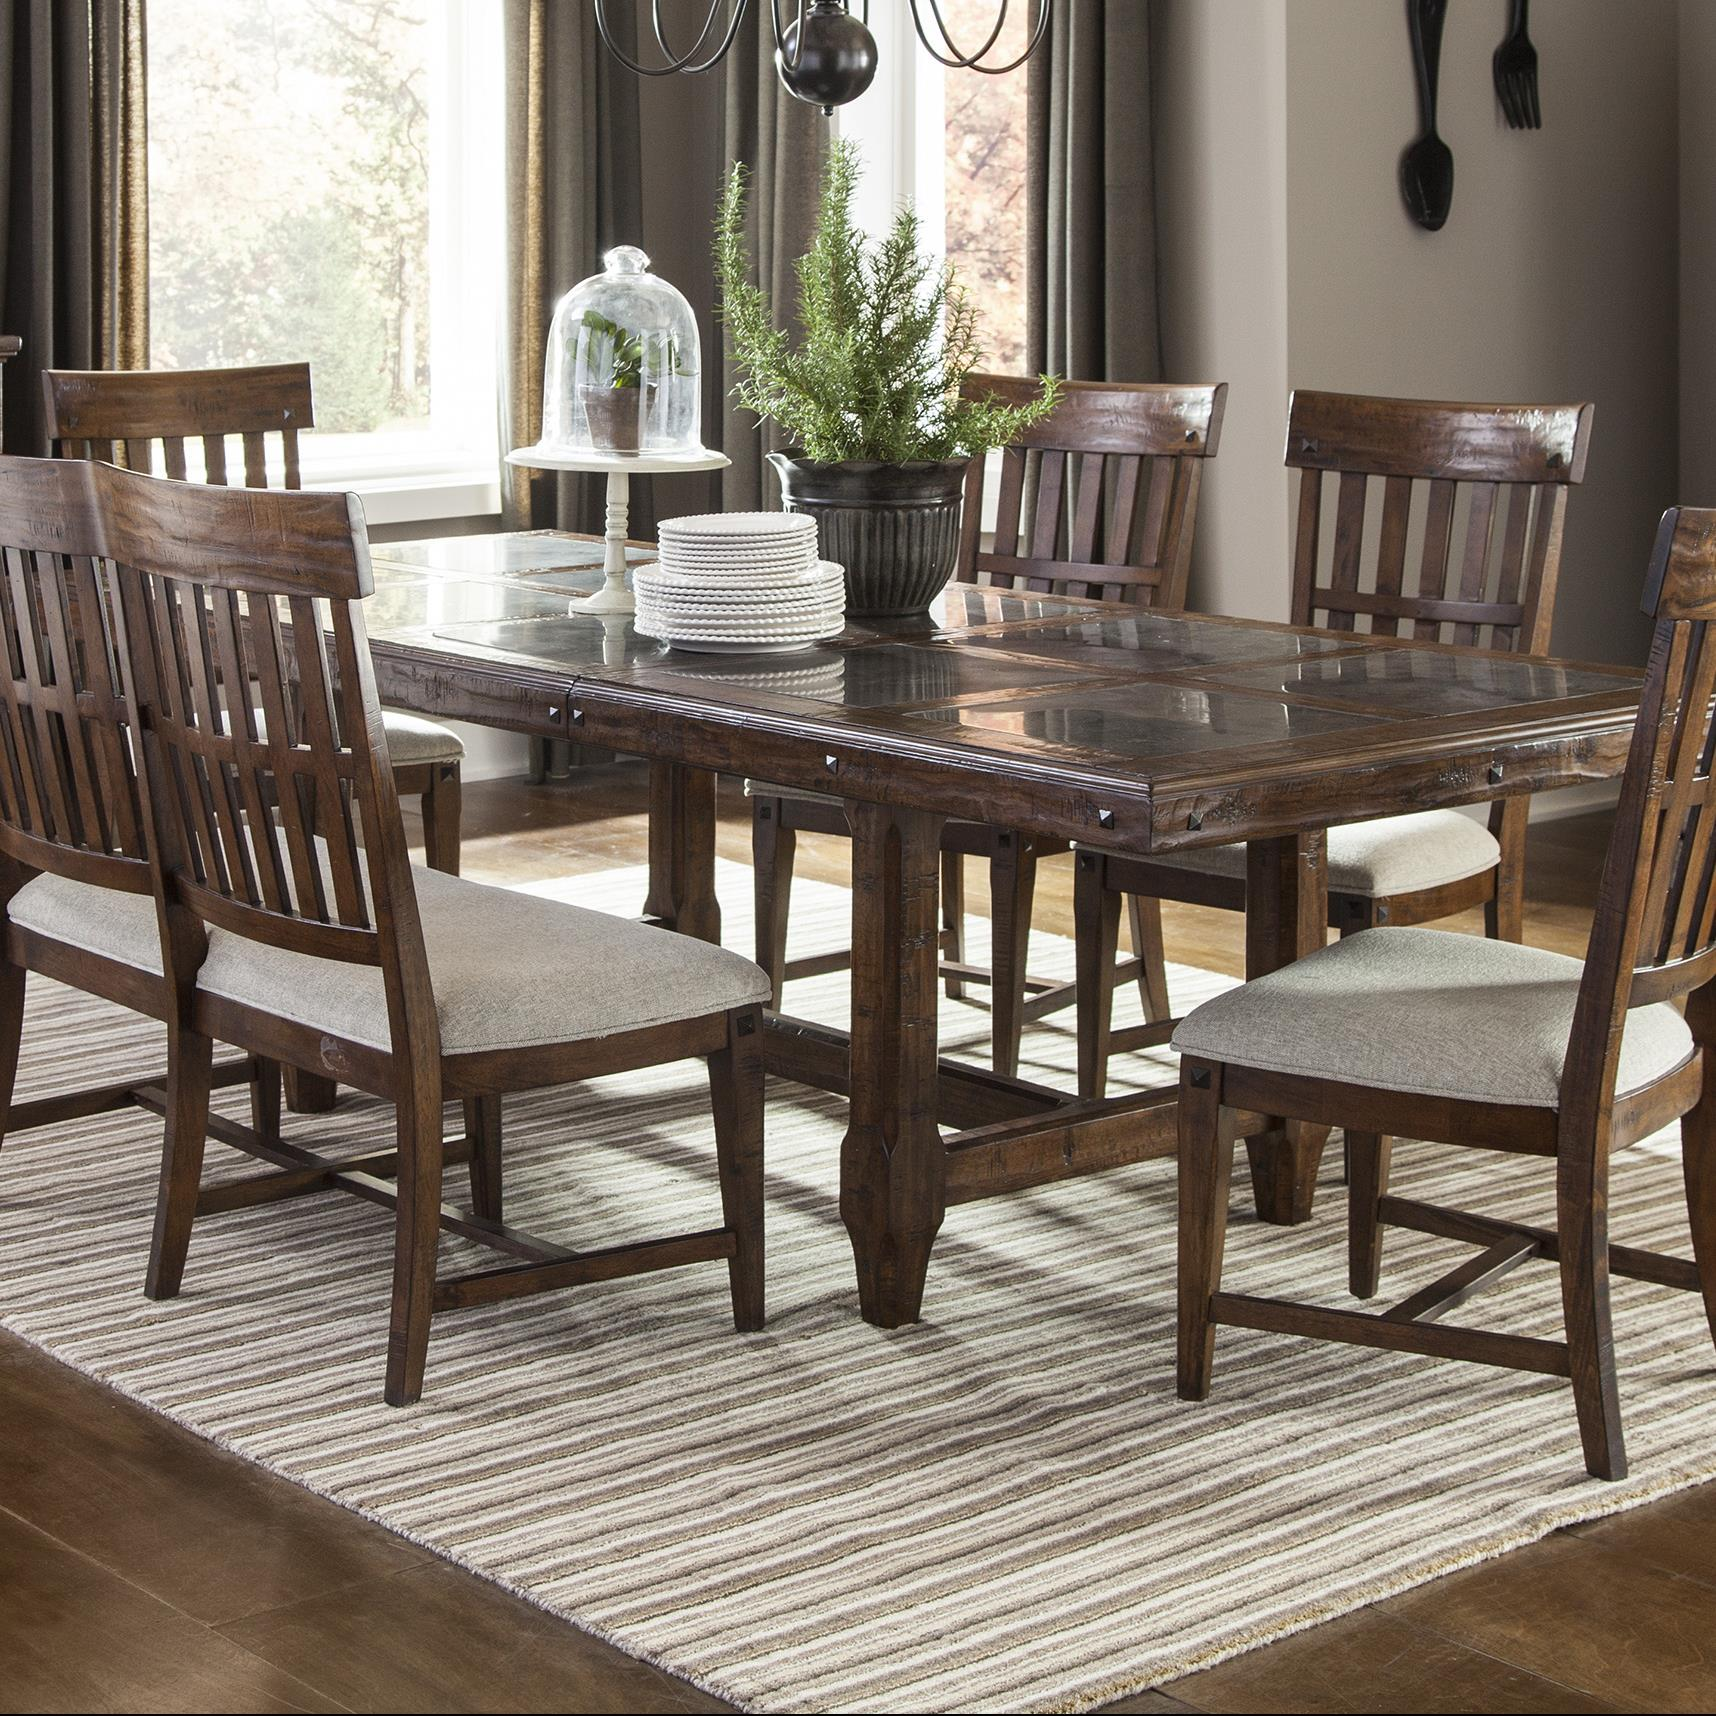 Stone Top Trestle Table with Leaf by Intercon